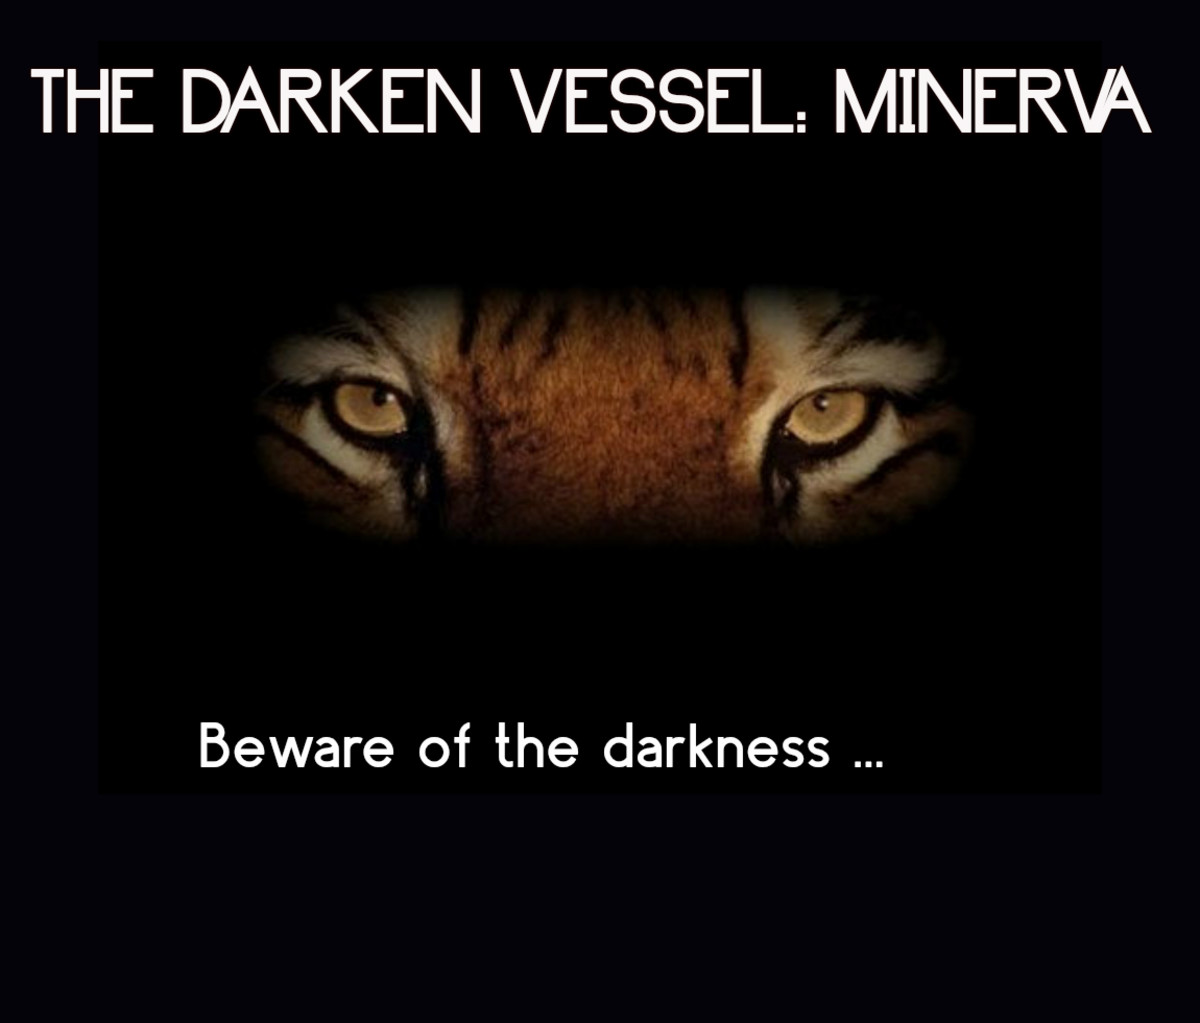 The Darken Vessel: Minerva 5